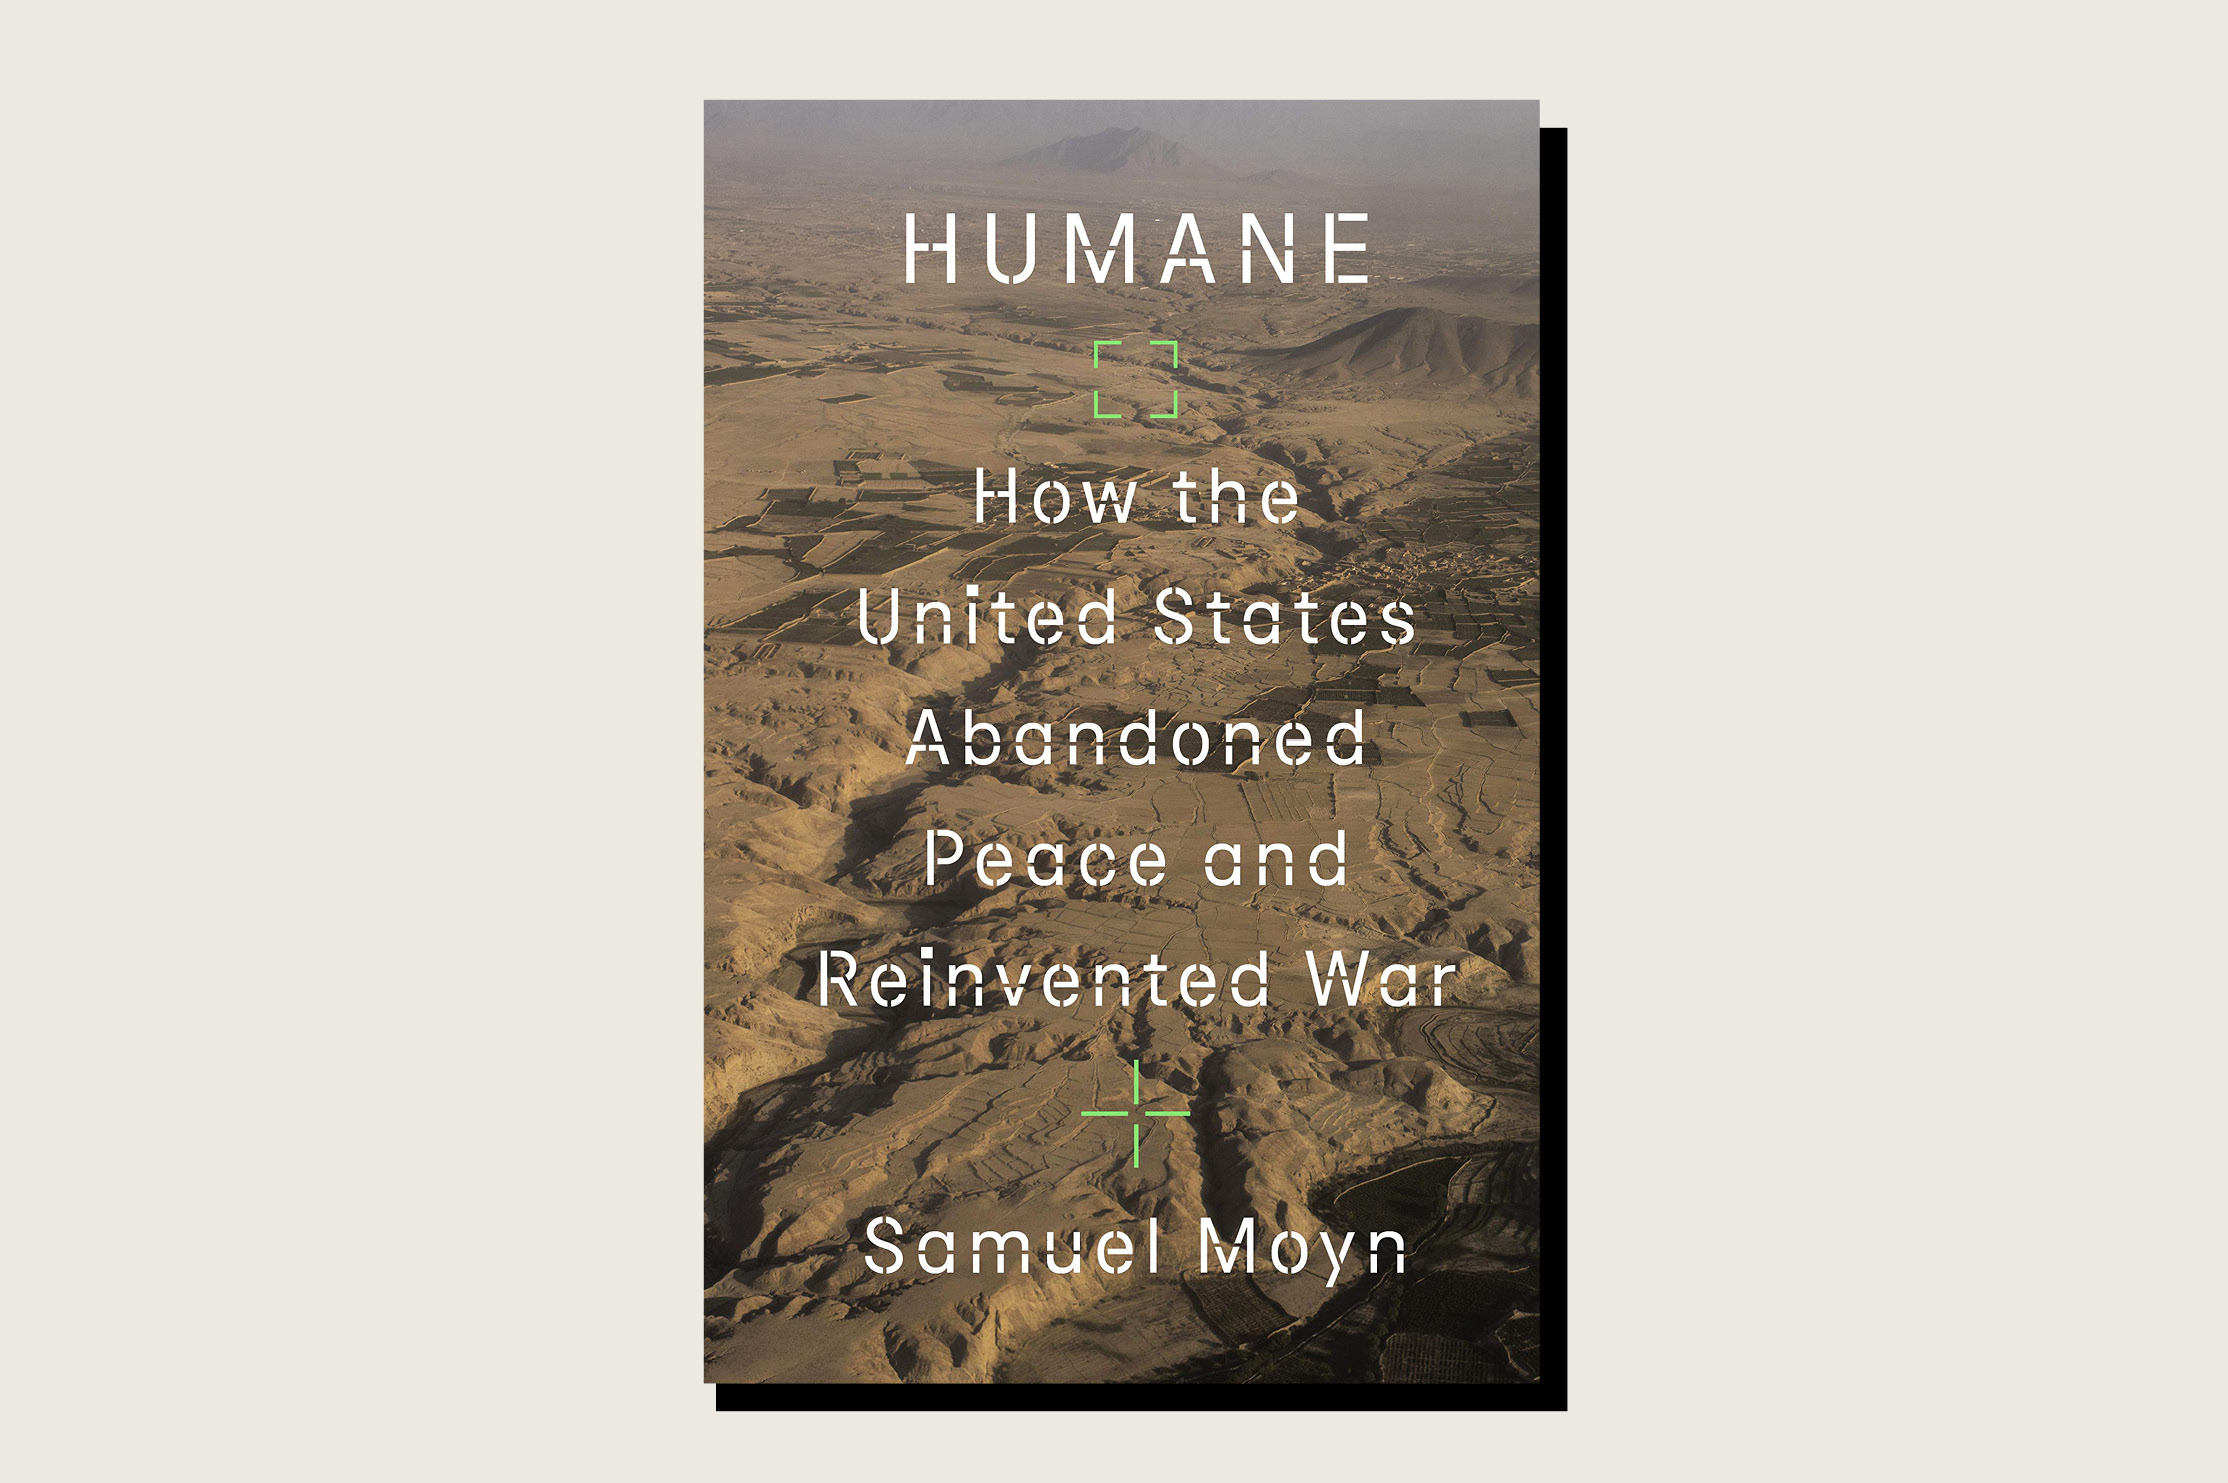 Humane: How the United States Abandoned Peace and Reinvented War, Samuel Moyn, Farrar, Straus & Giroux, 416 pp, , September 2021